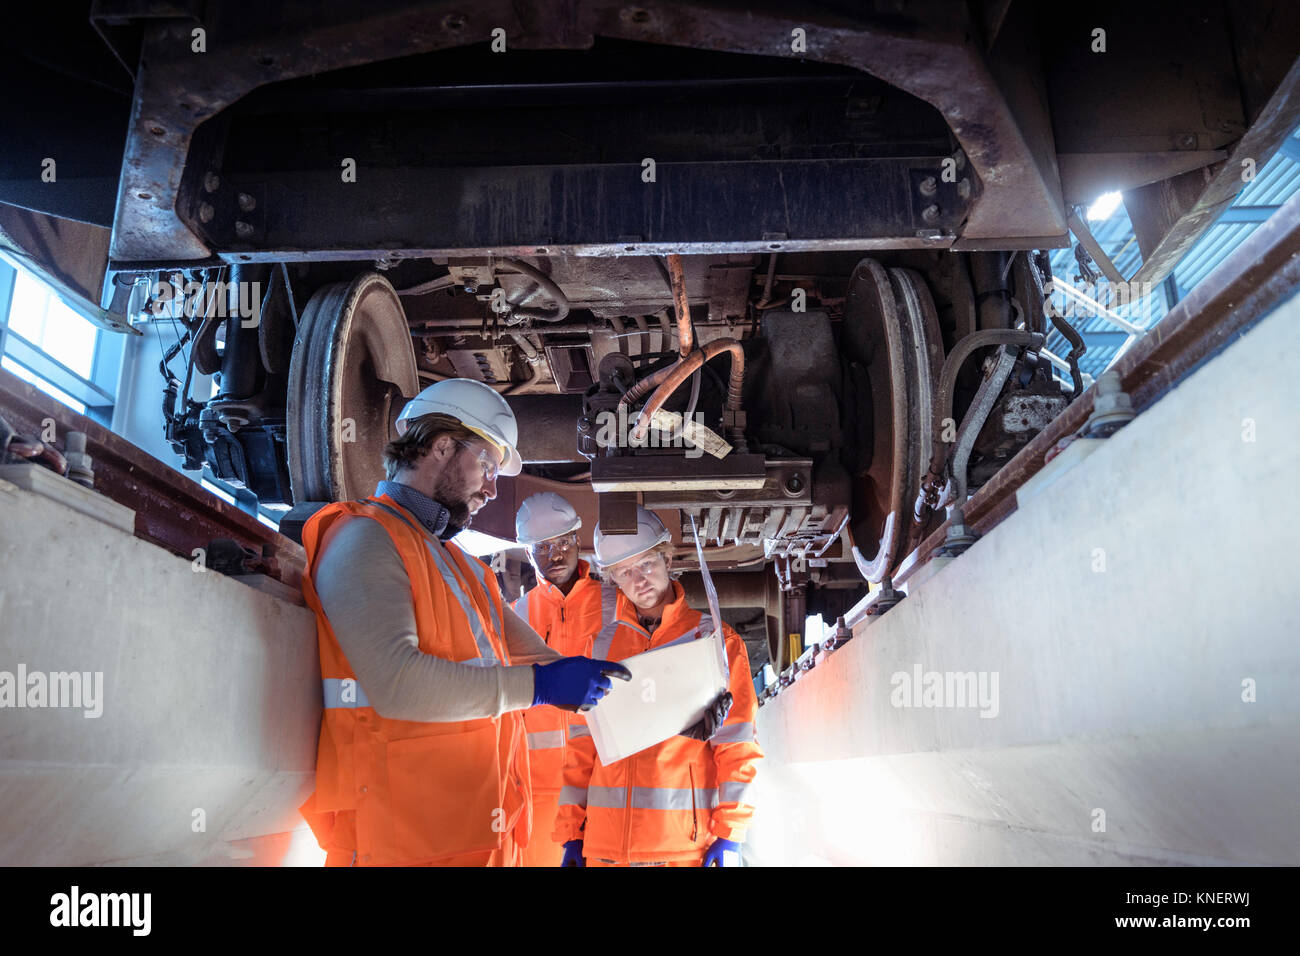 Istruttore e apprendisti sotto il treno in railway engineering facility Foto Stock